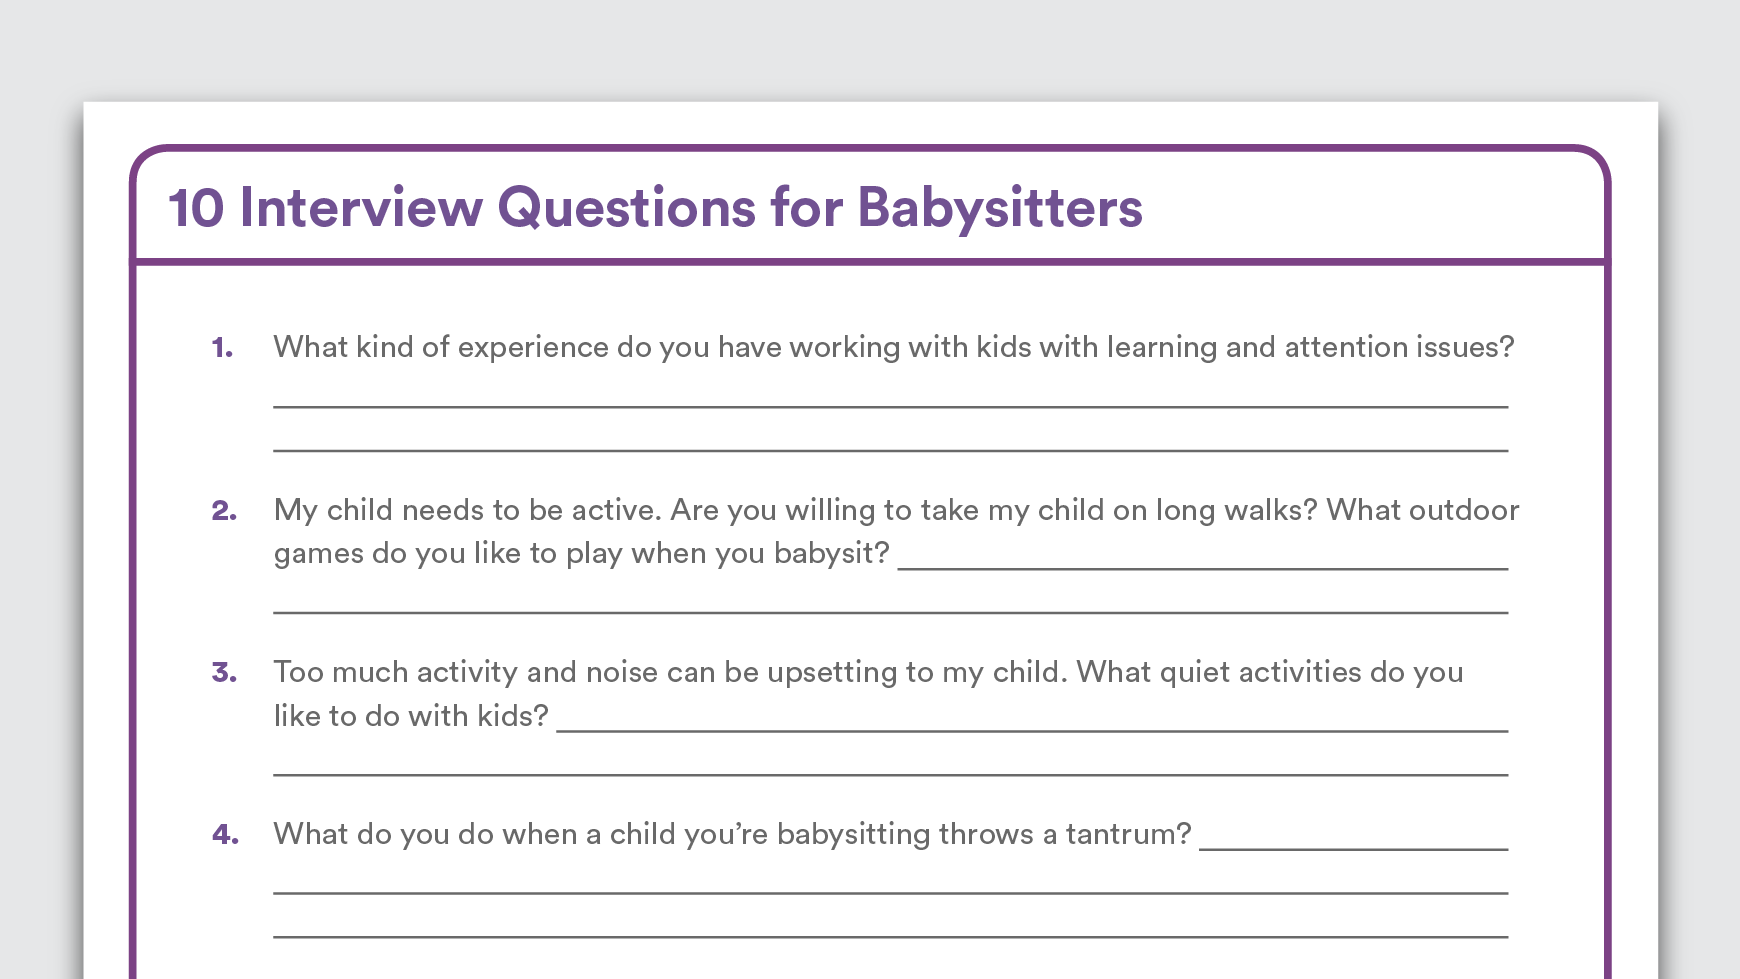 10 Interview Questions For Babysitters When Your Child Has